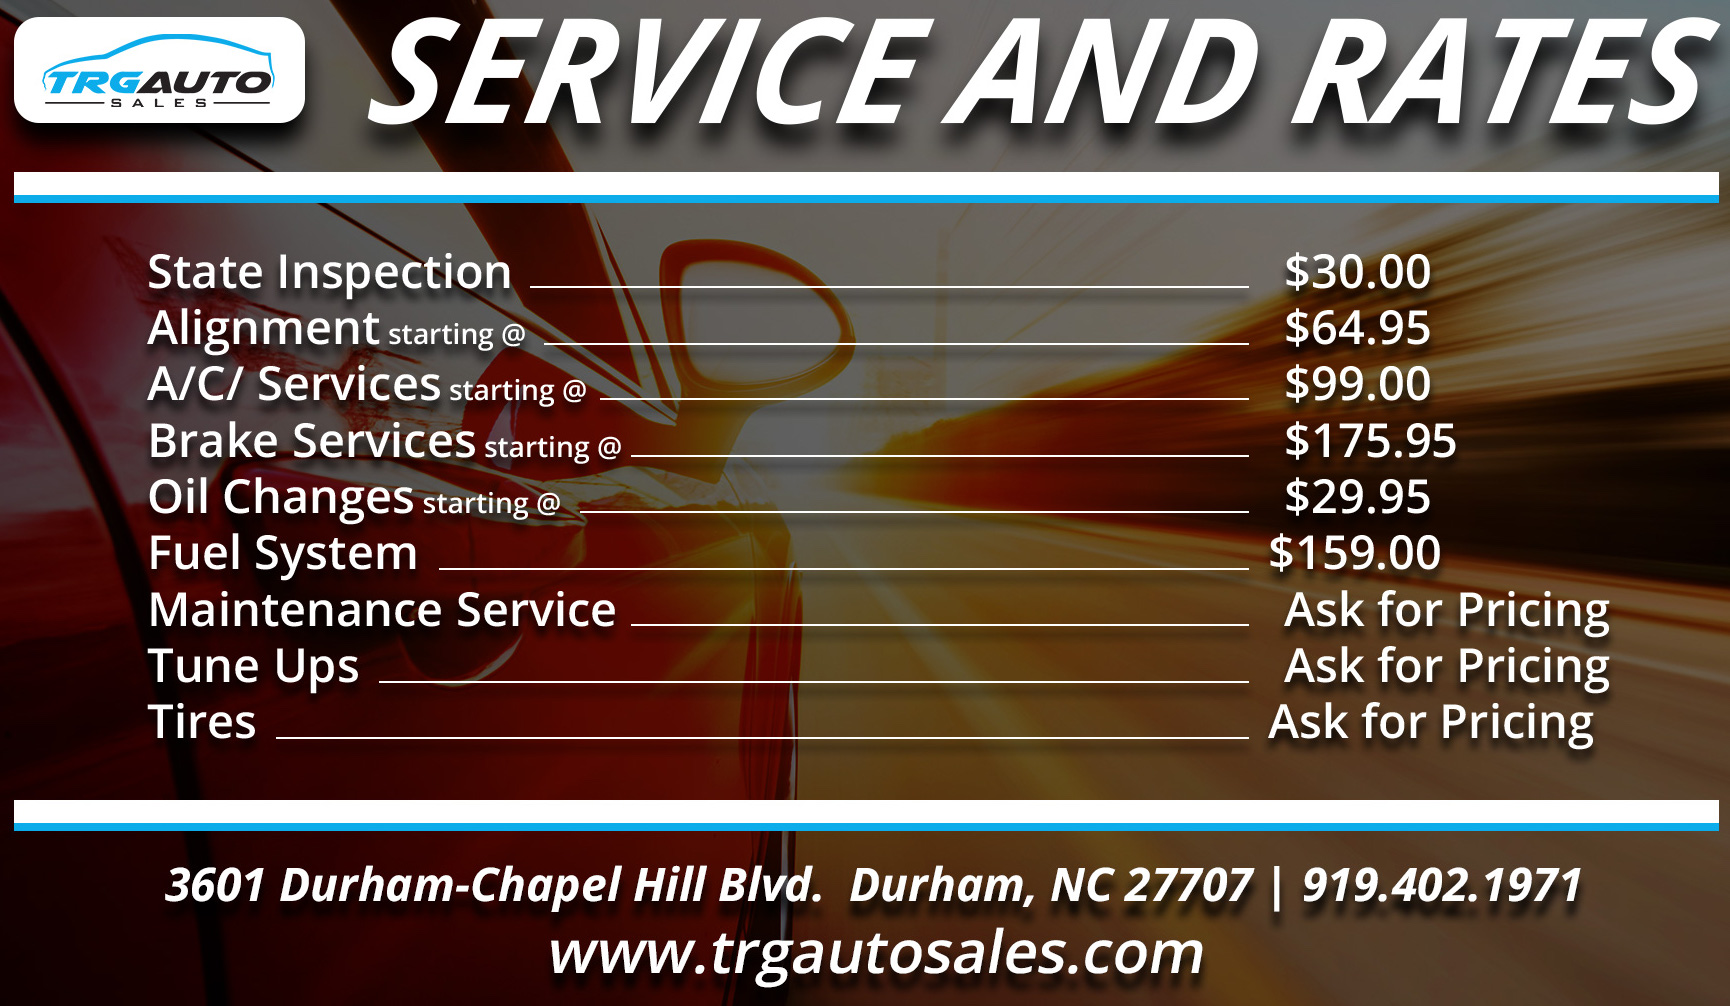 Trg auto sales service used cars durham nc dealer for Country hill motors inventory